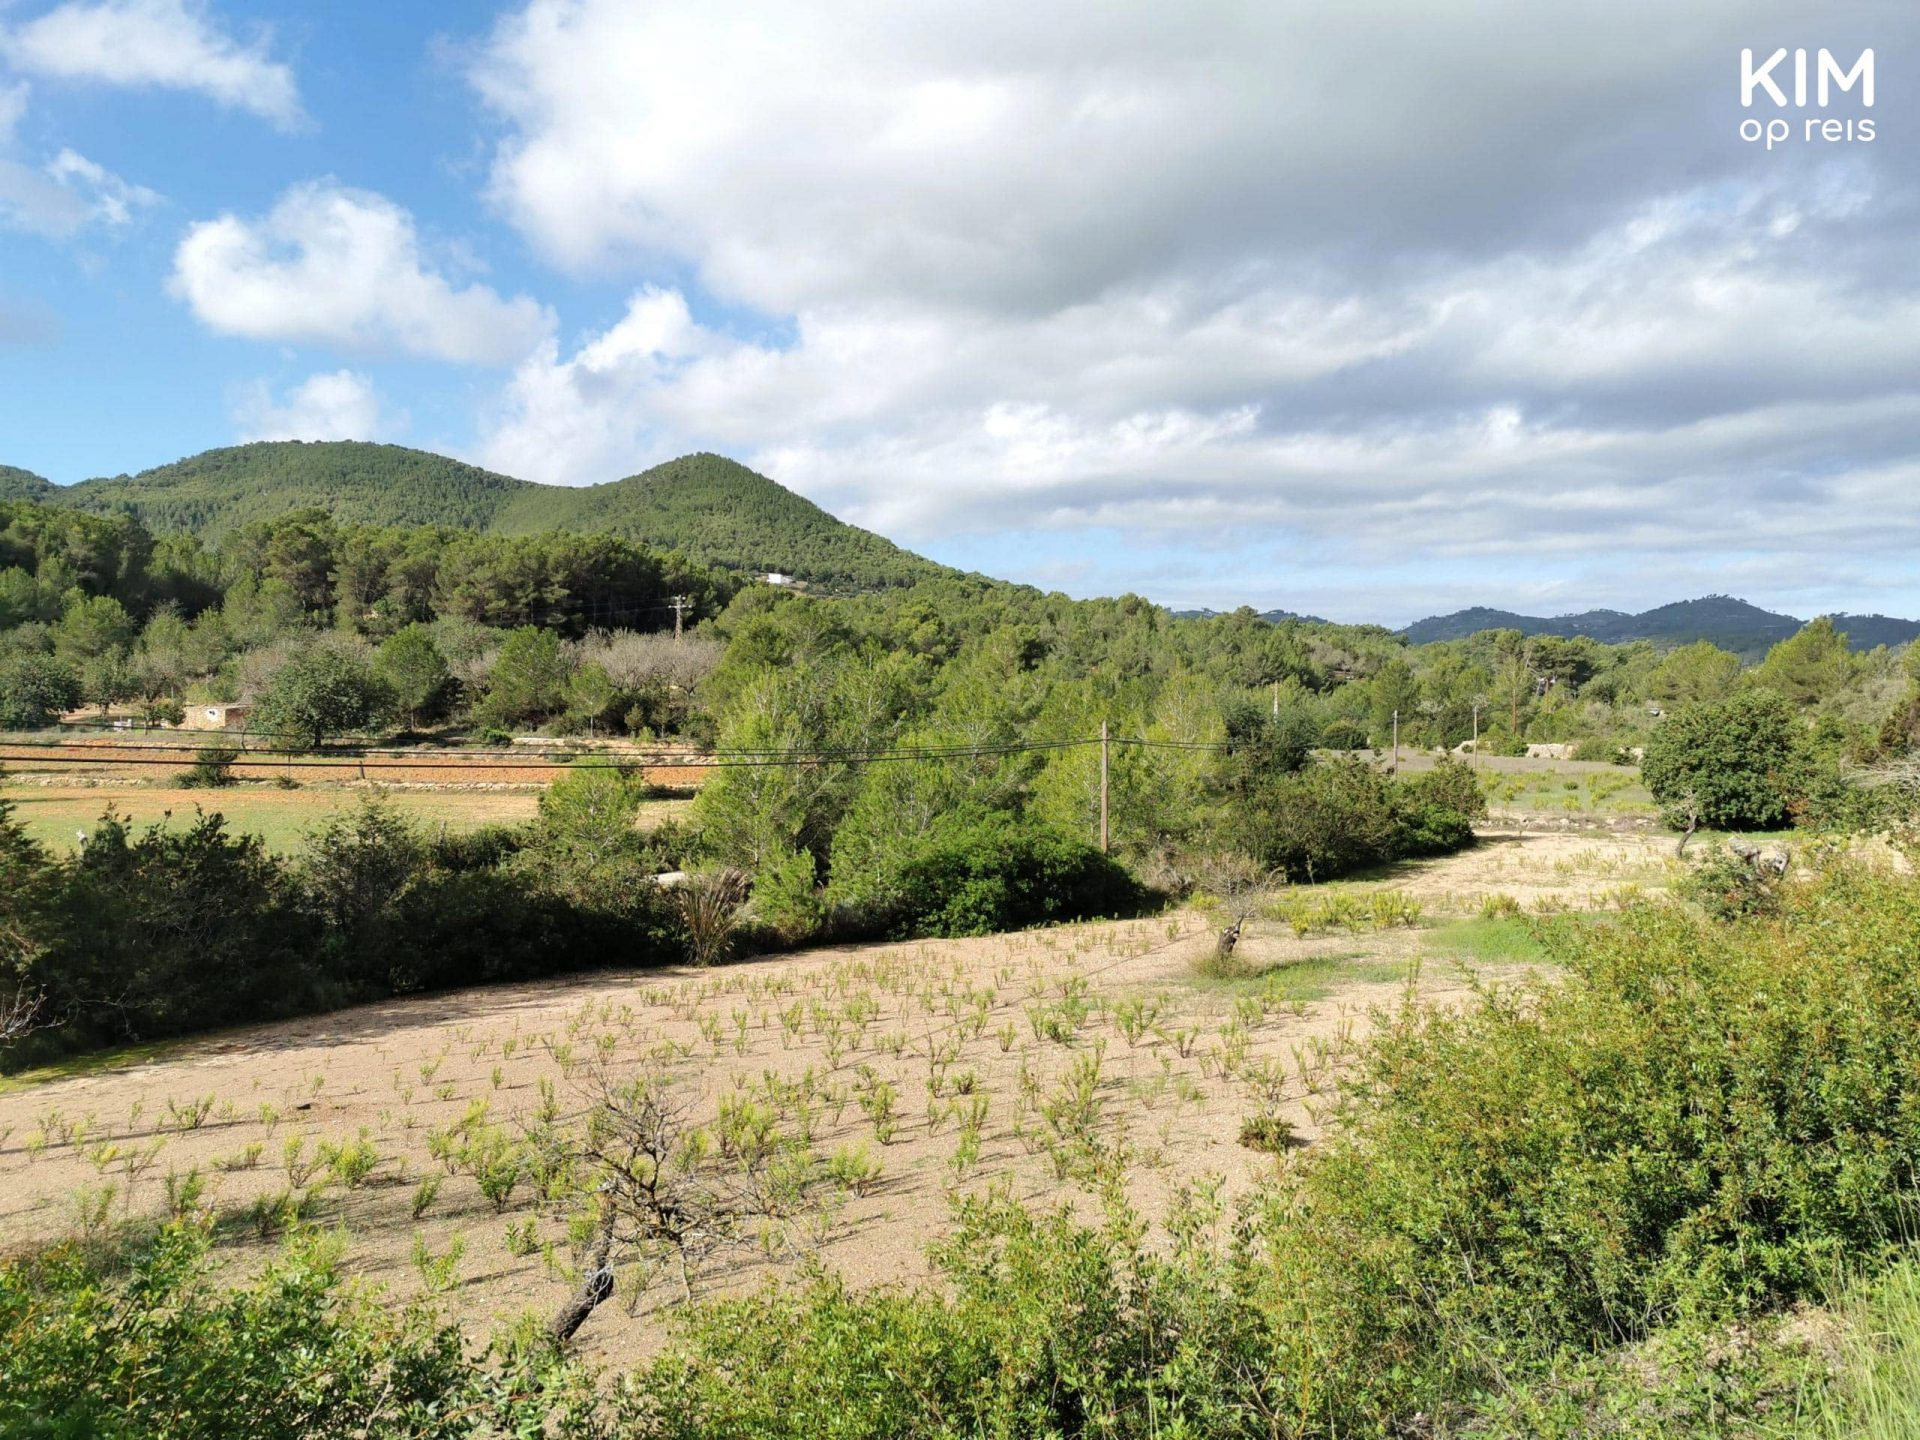 Hiking Ibiza - view over the countryside of Ibiza with lots of greenery